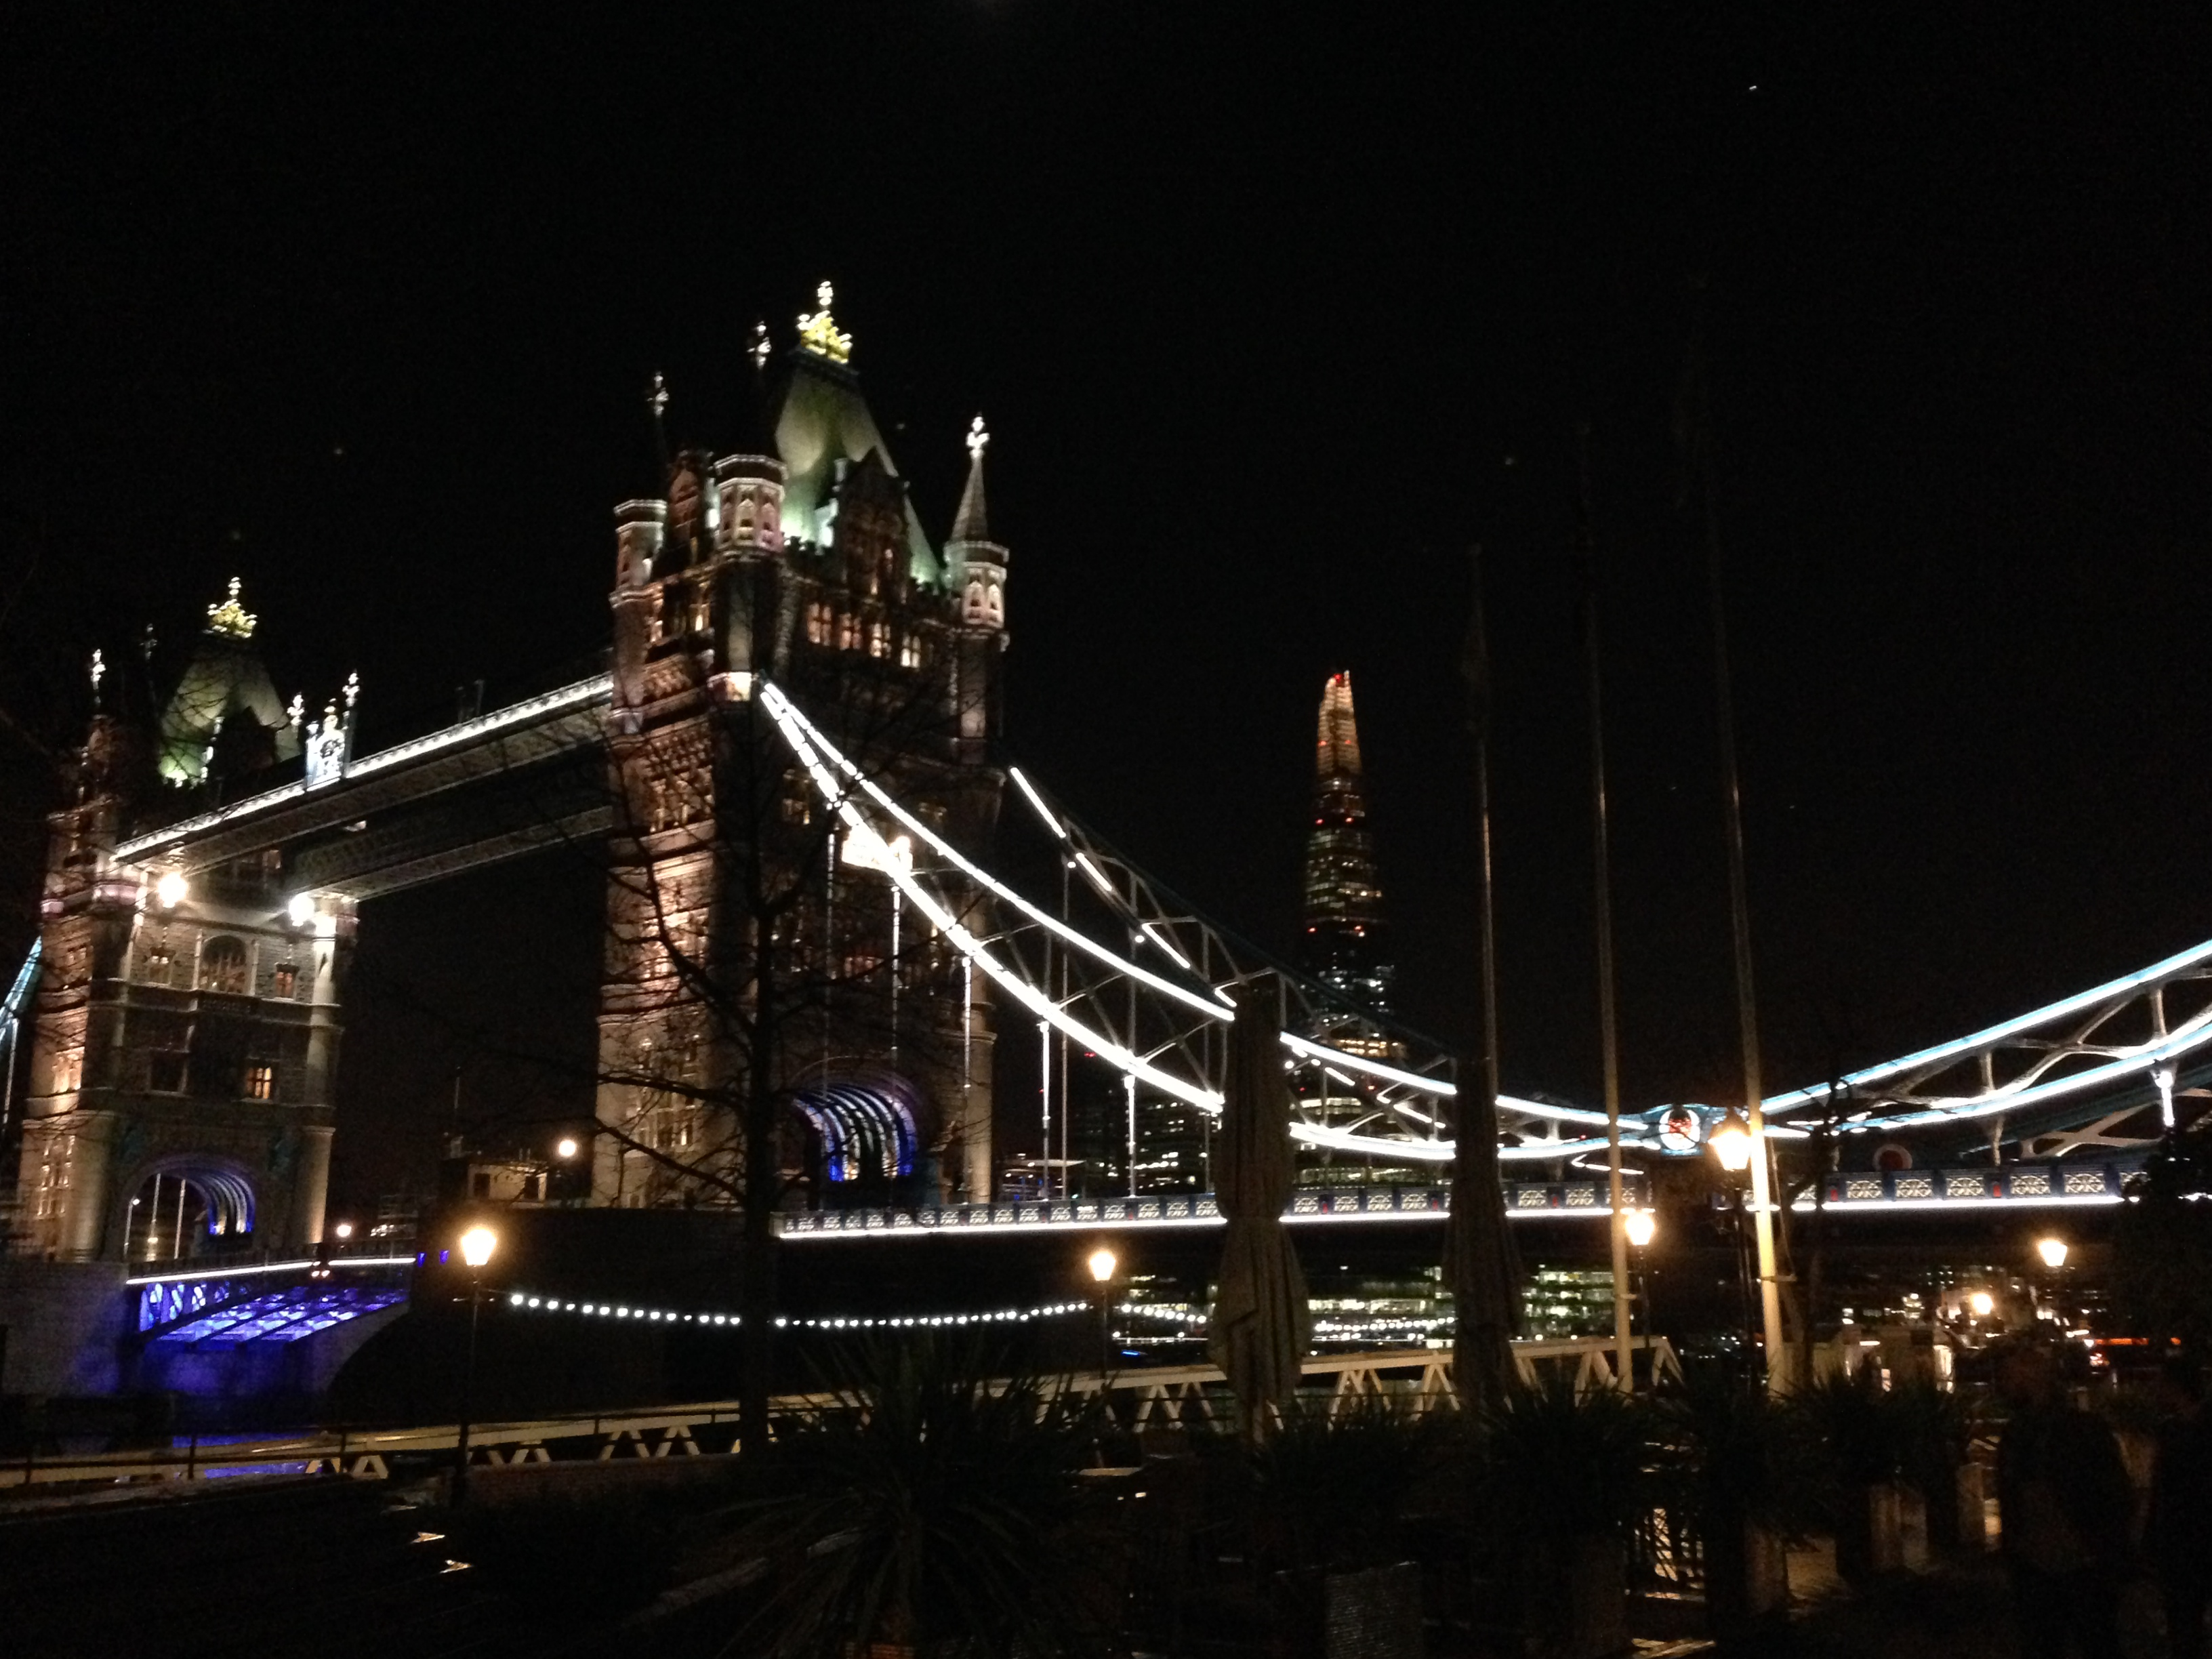 2014-03-12 00.01.08 Tower Bridge